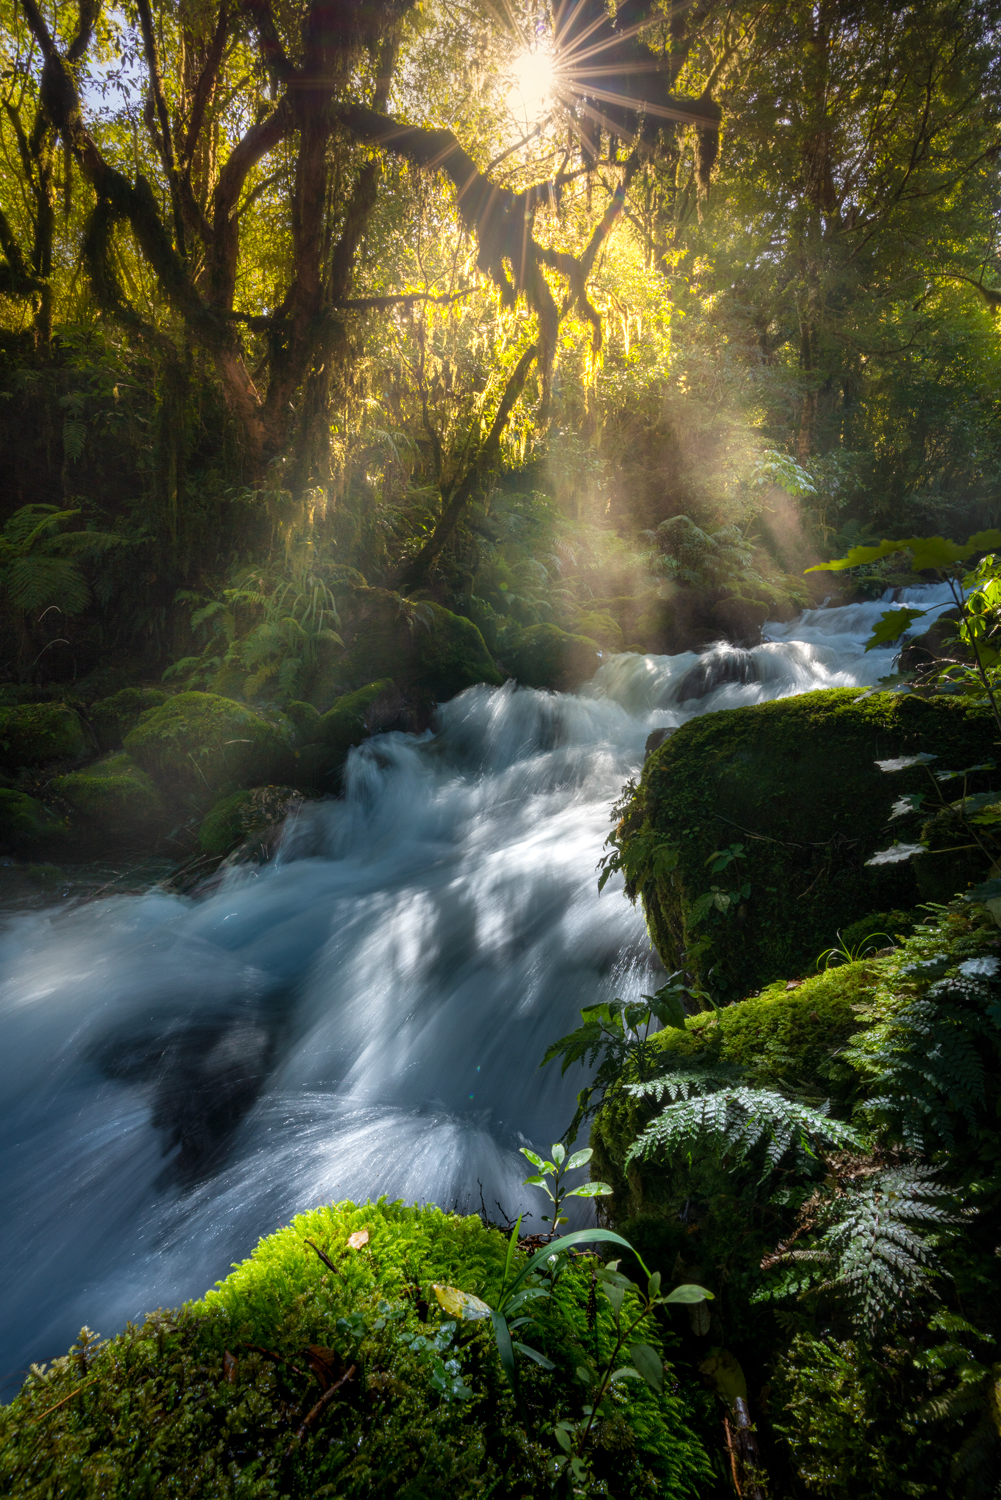 Cascades and forest, Fiordland New Zealand